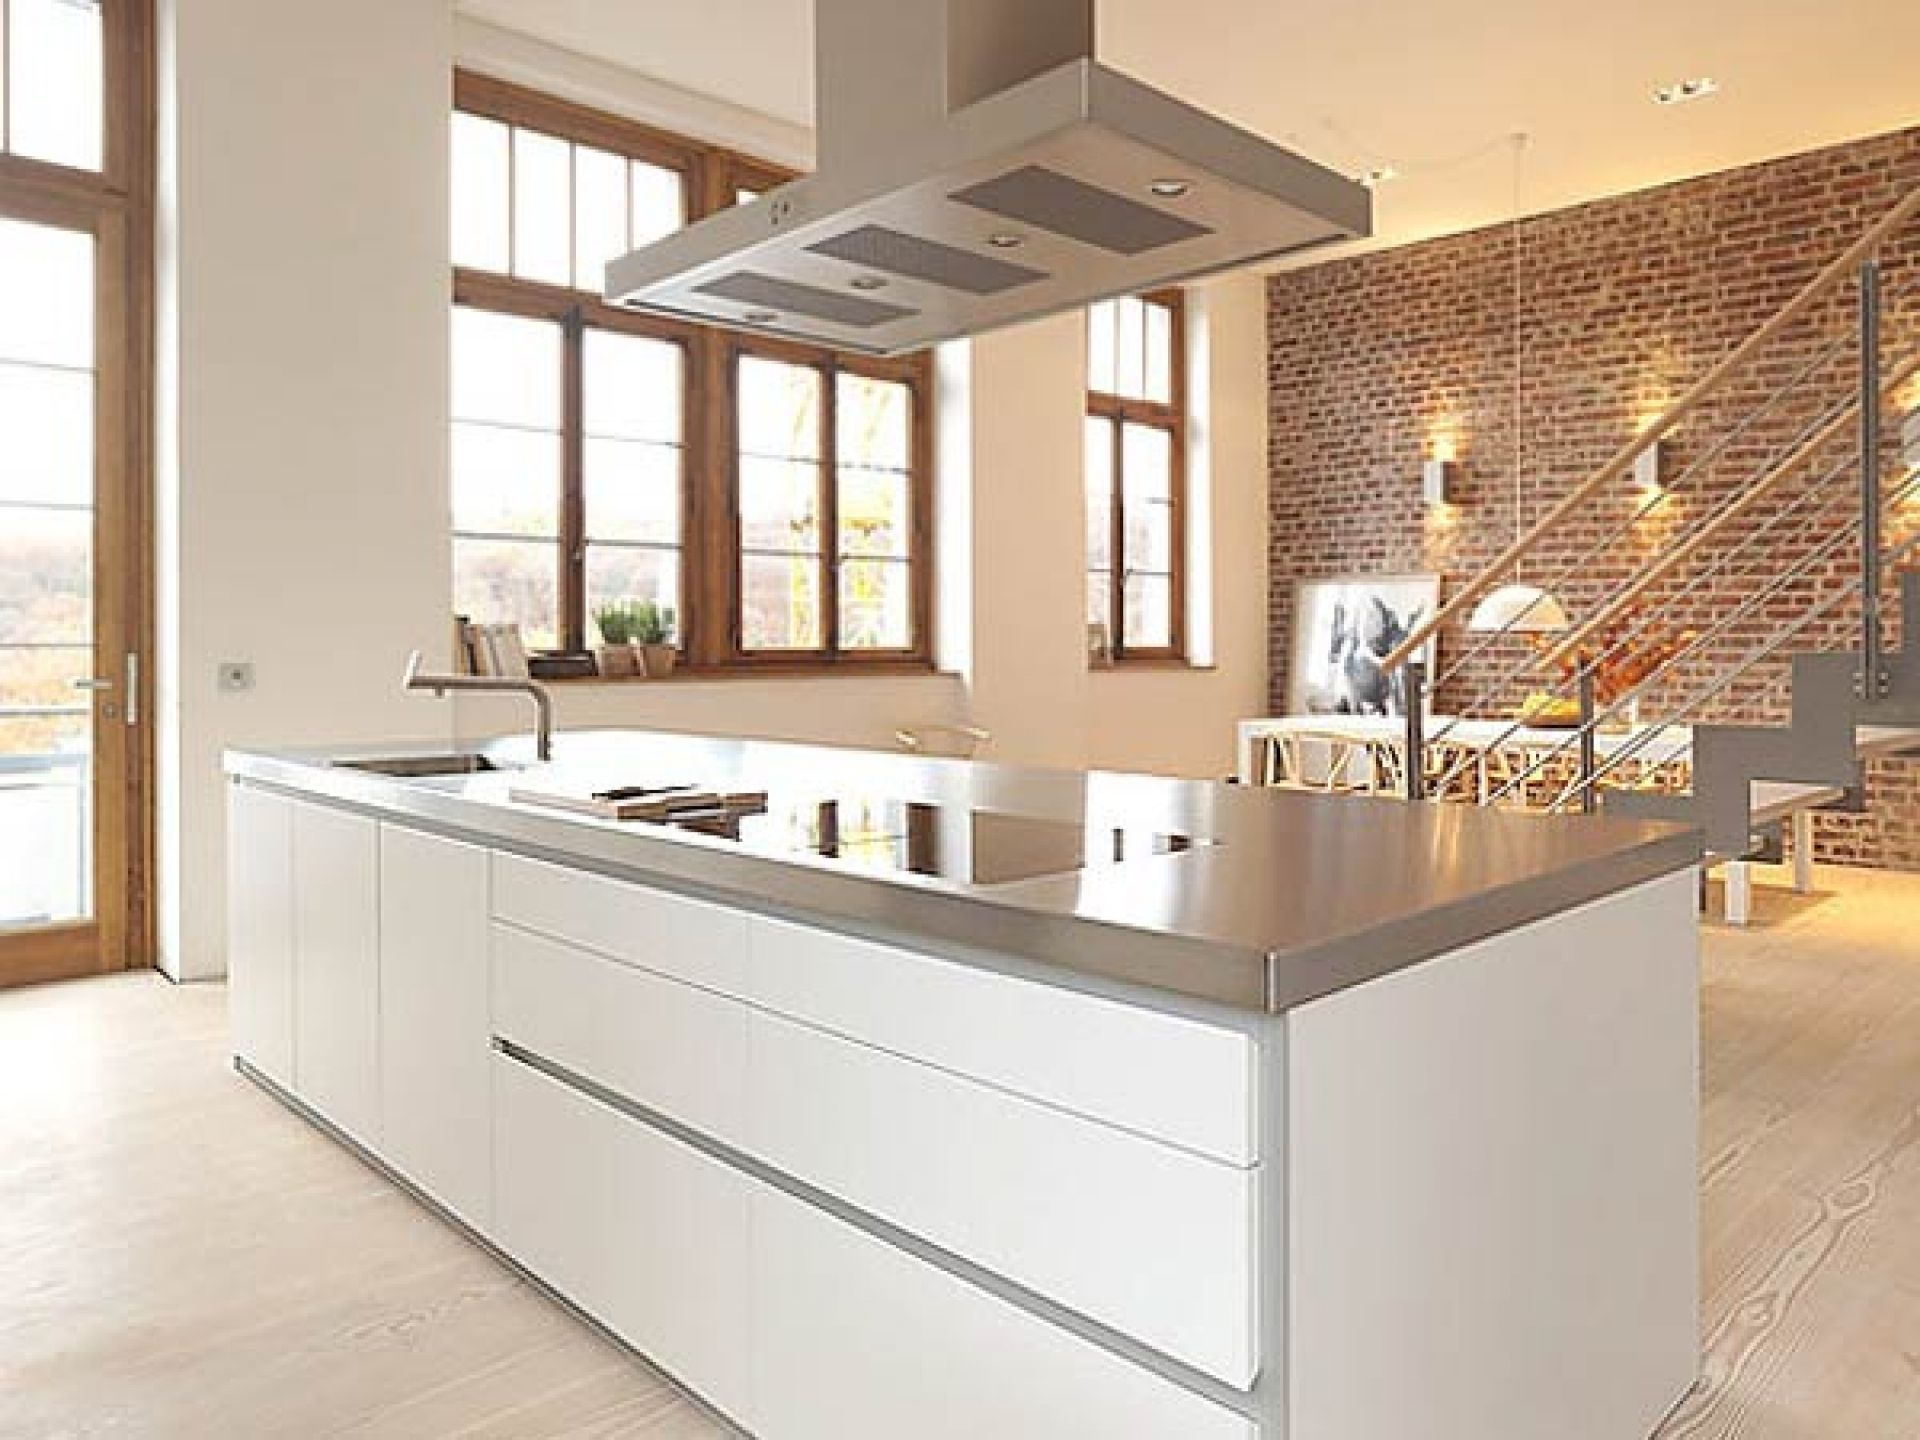 The overhead sink on the countertop is the highlight of the modern interior